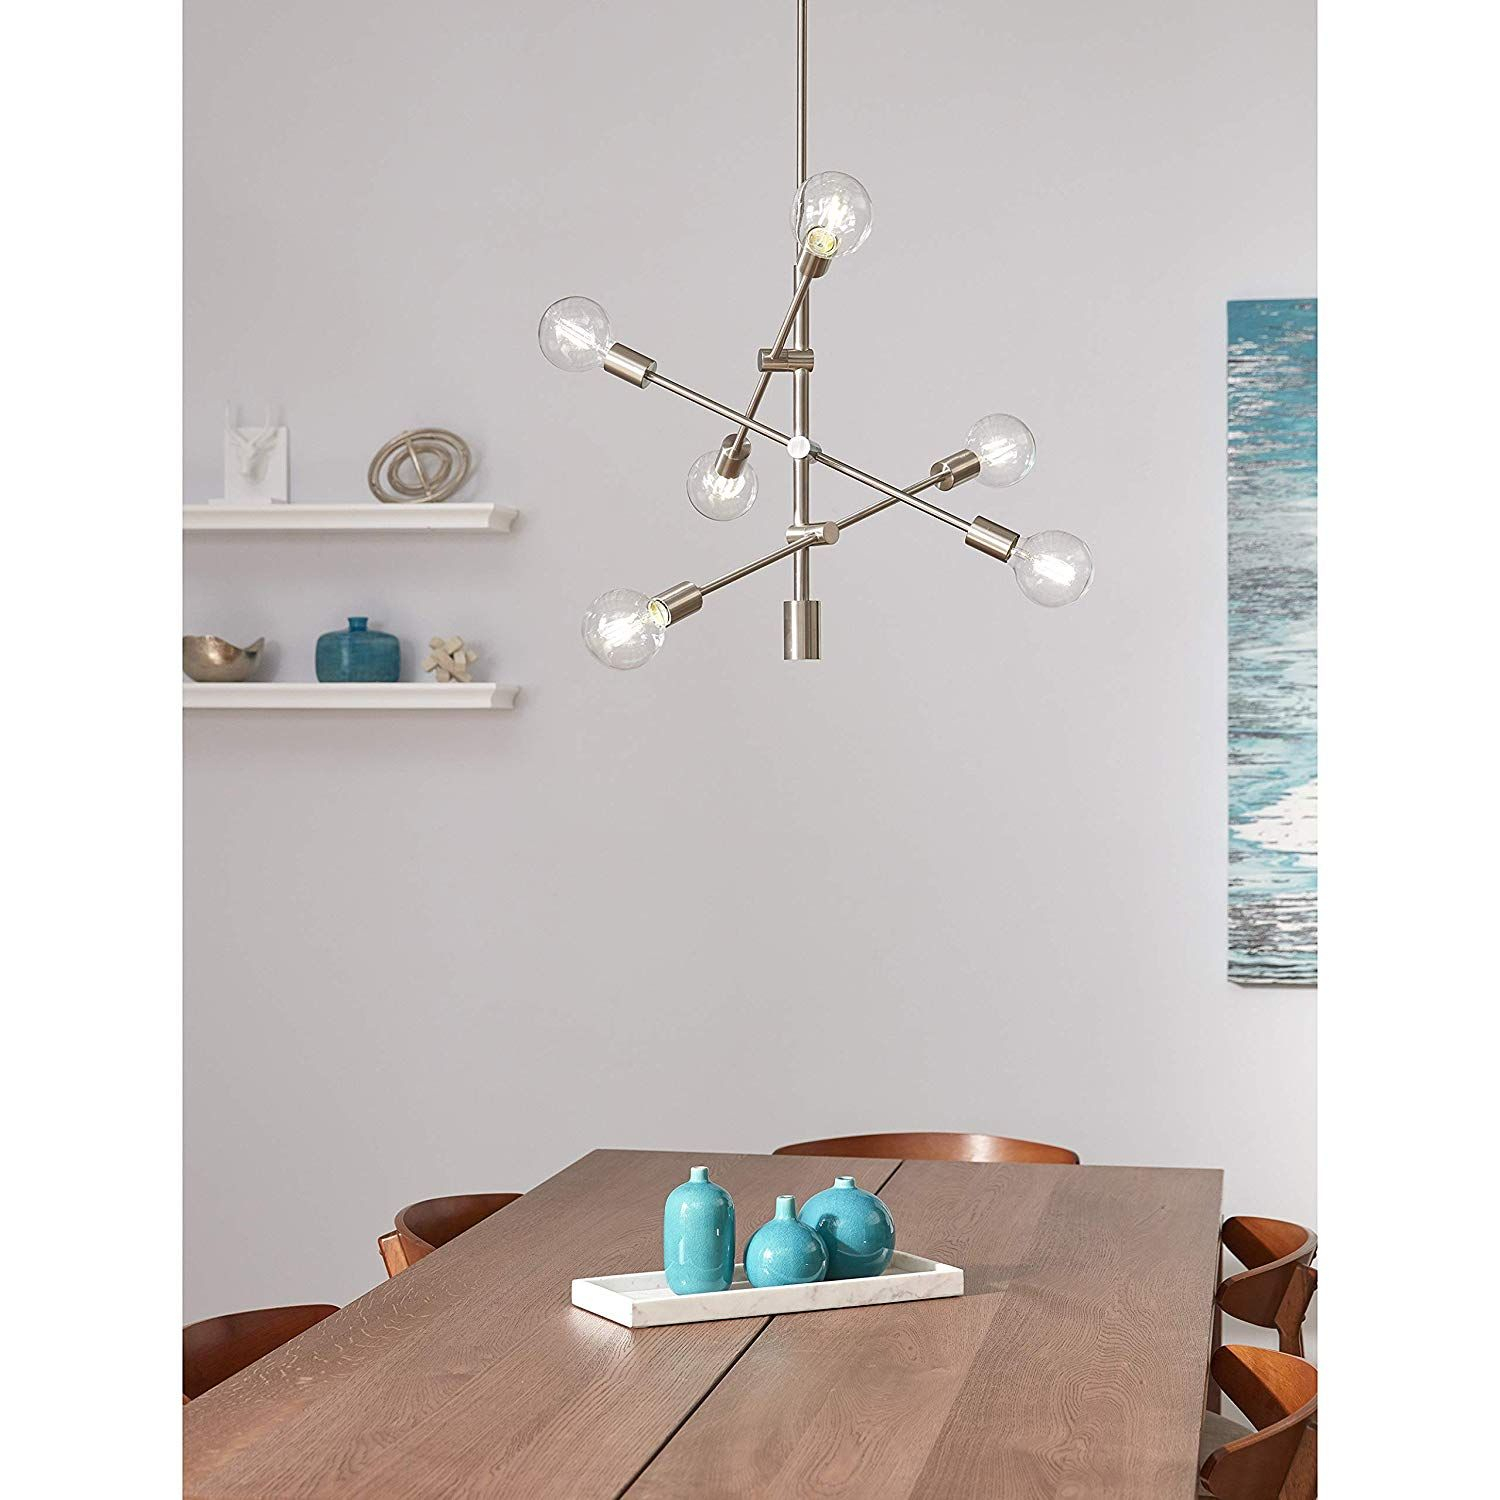 Marabella Led Sputnik Chandelier Light Fixture, Brushed in Asher 12-Light Sputnik Chandeliers (Image 20 of 30)